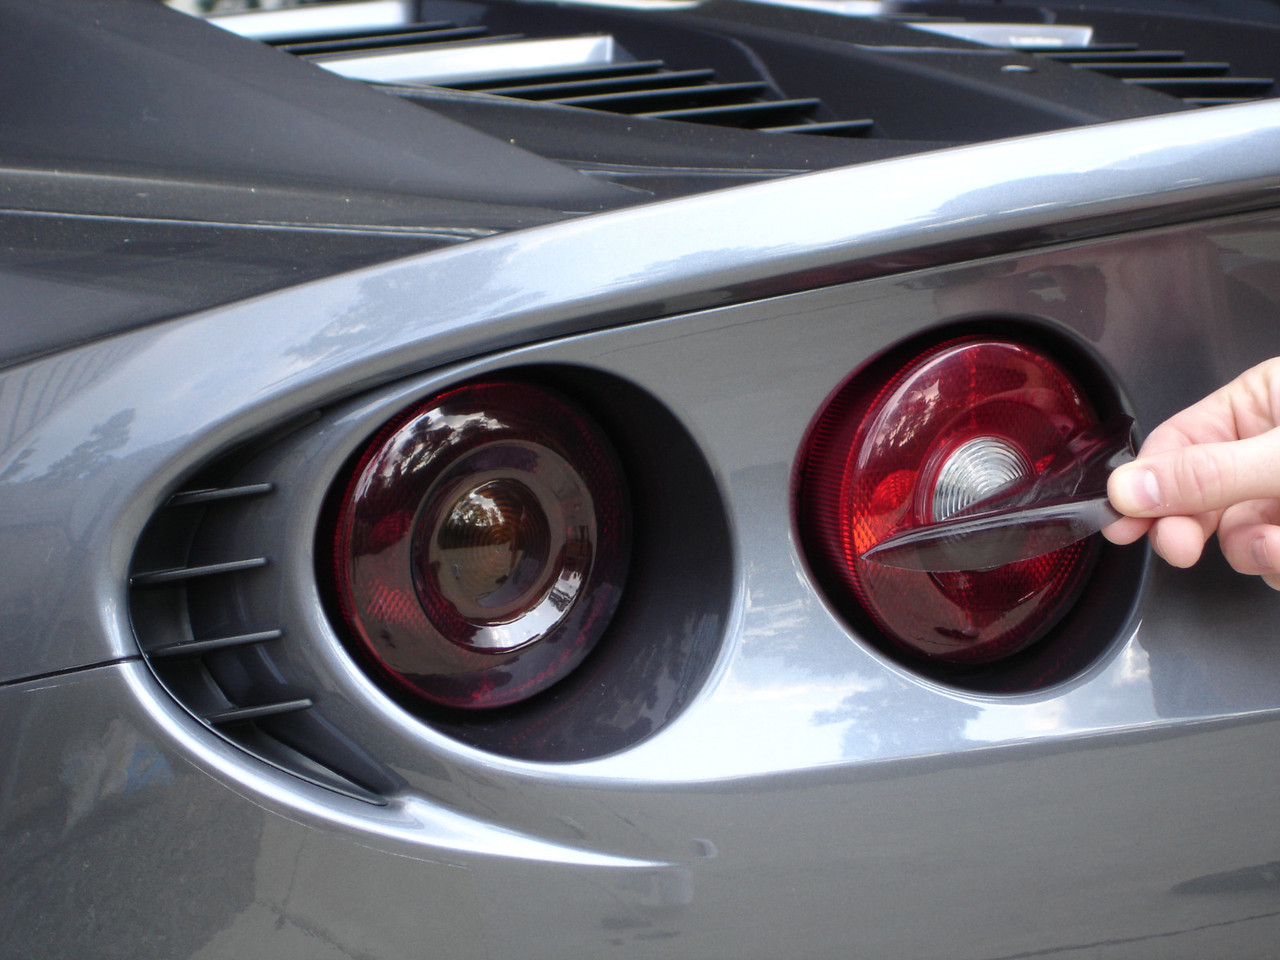 Acura Ilx 19 Tail Light Covers